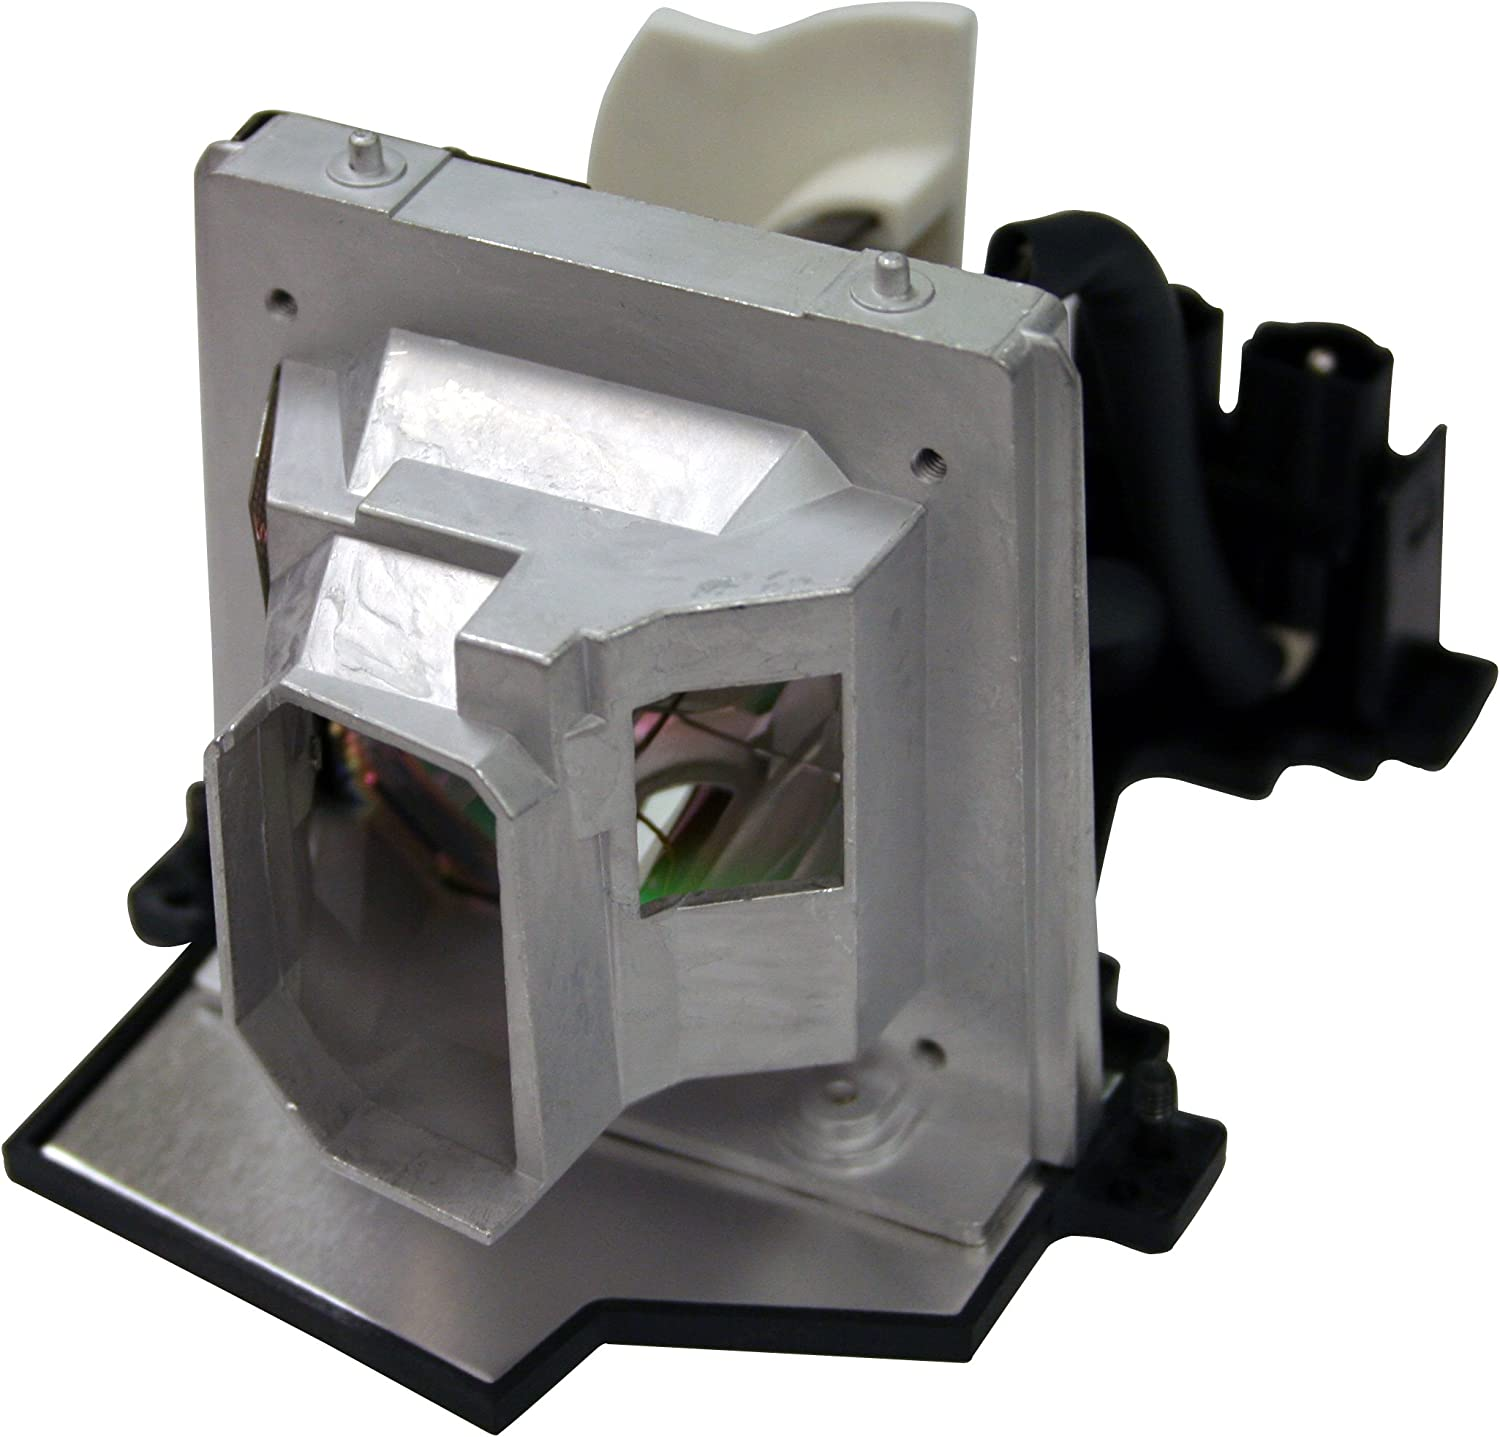 BL-FU180A Optoma Projector Lamp Replacement Projector Lamp Assembly with Genuine Original Philips UHP Bulb Inside.